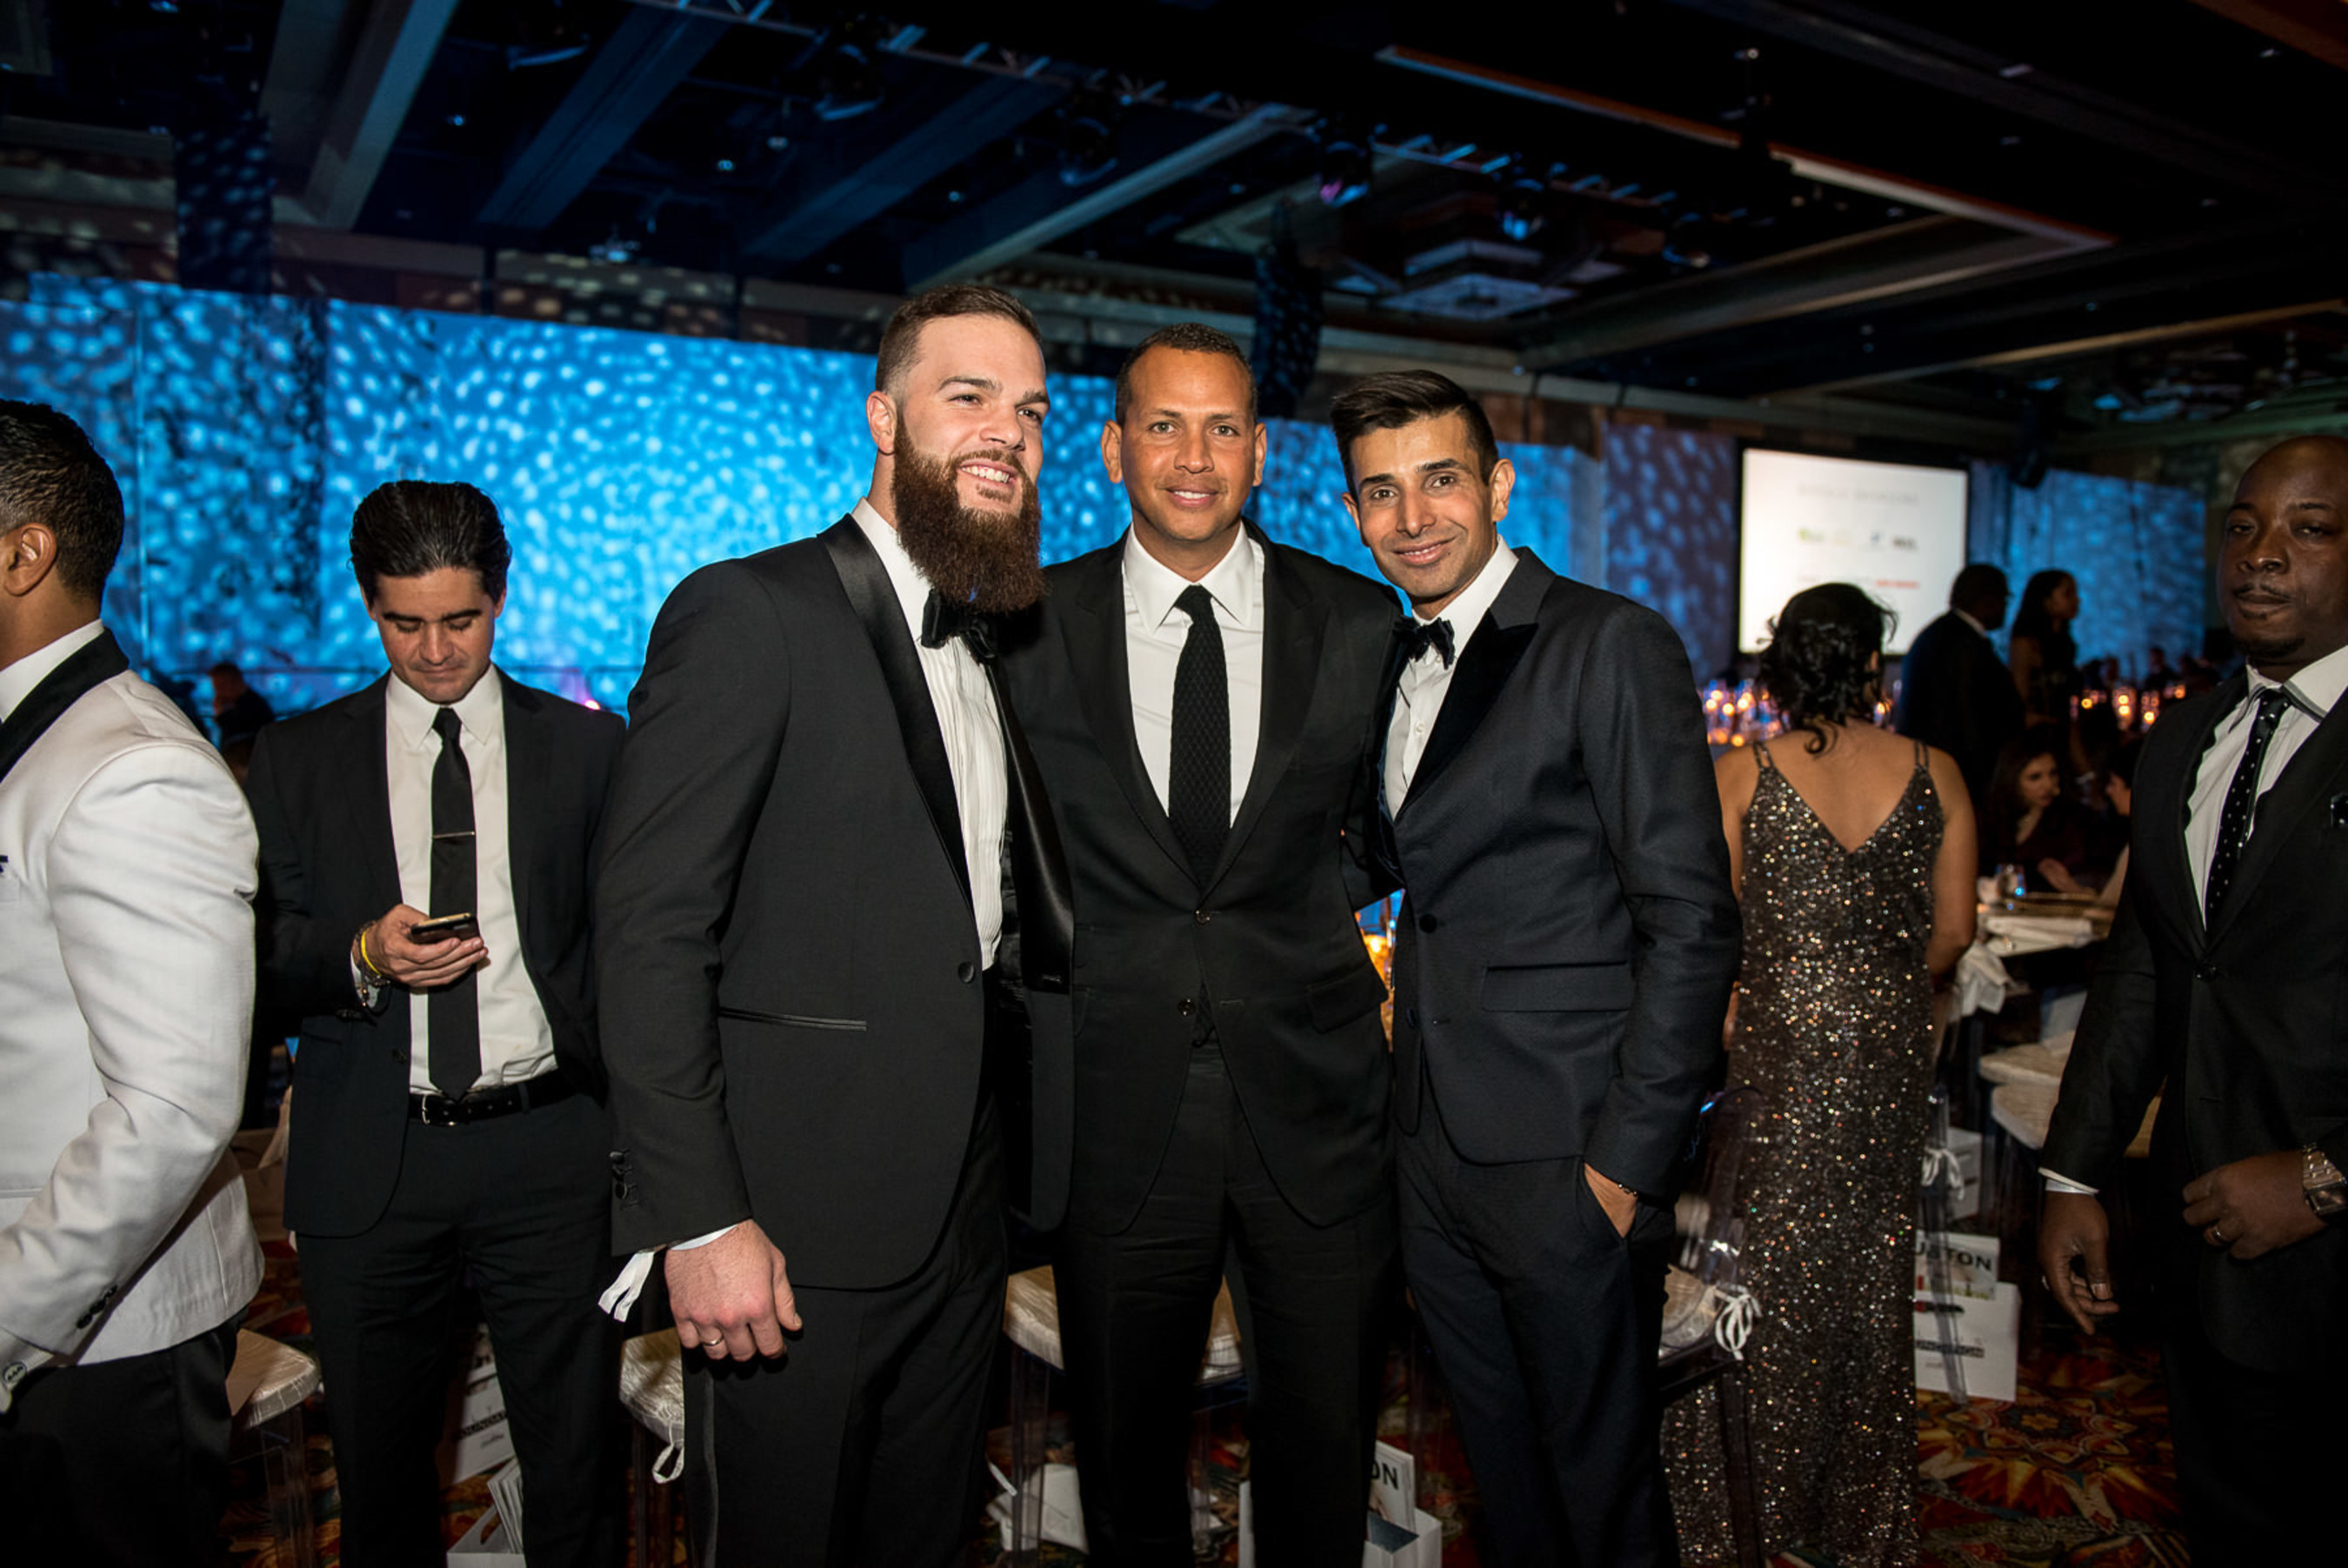 'Toast to Living Well' Gala Raises $180,000 for the Altus Foundation